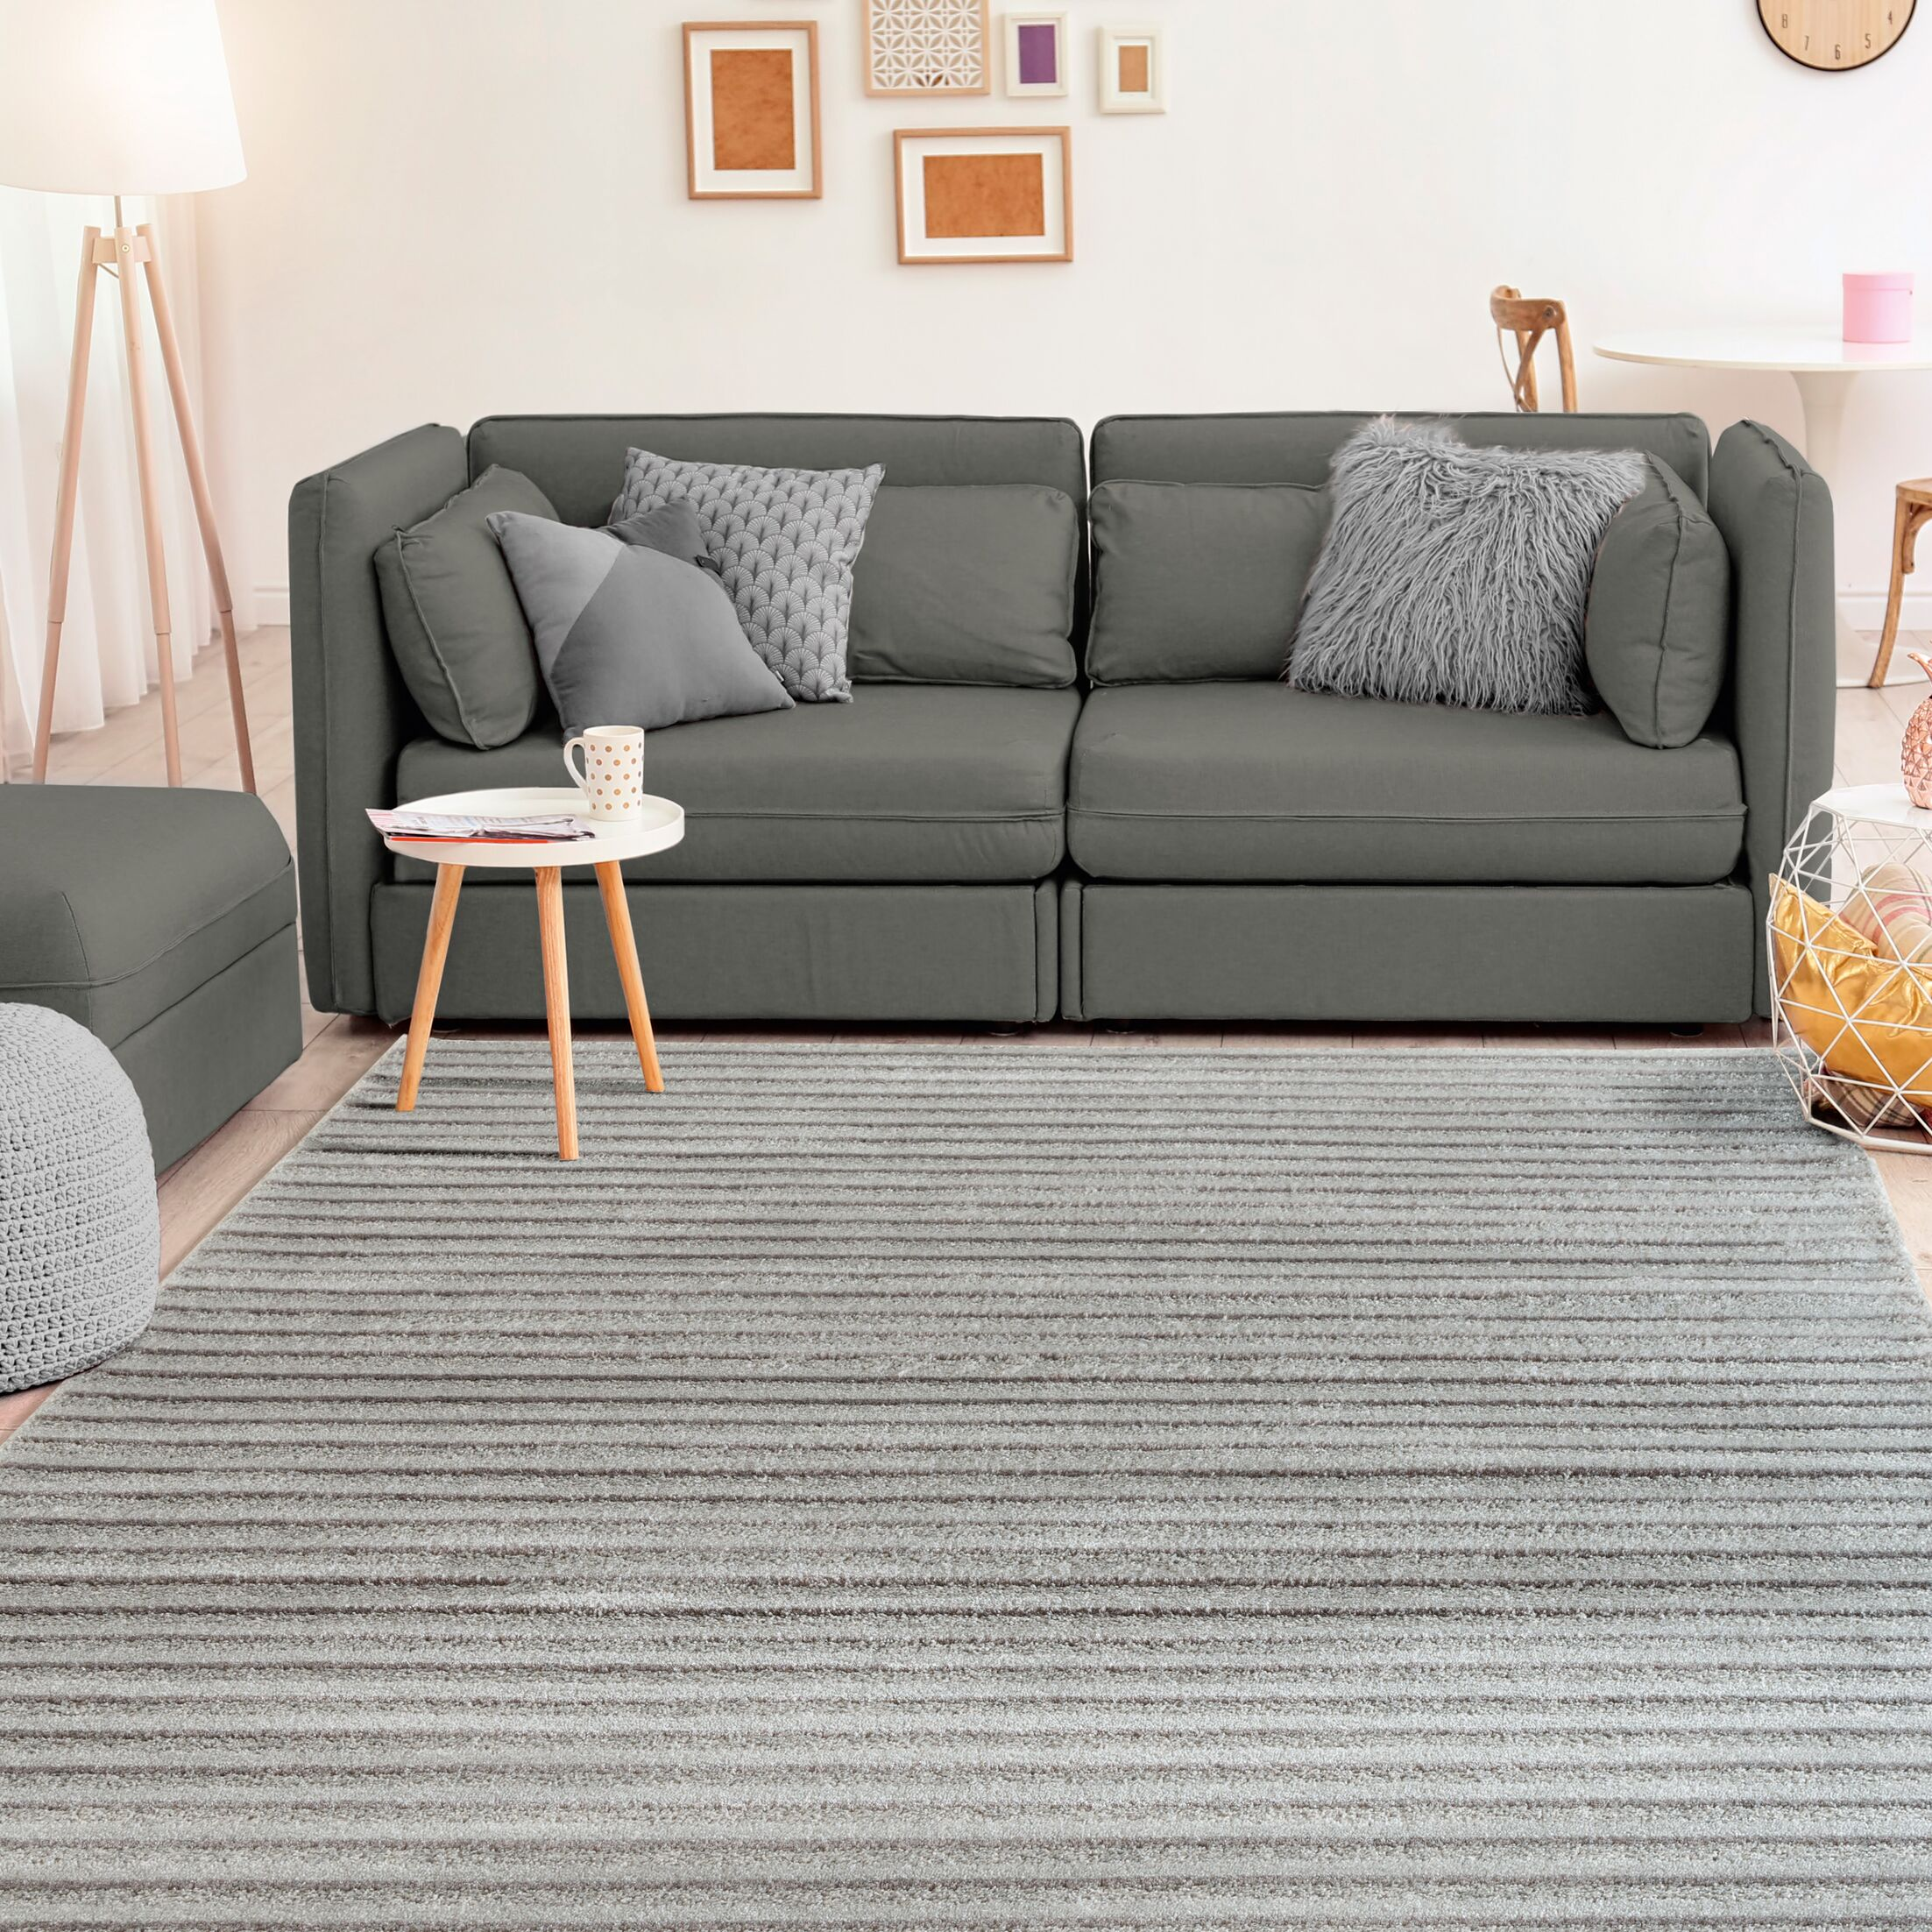 Ospina Accent Gray/Brown Area Rug Rug Size: Rectangle 1'10